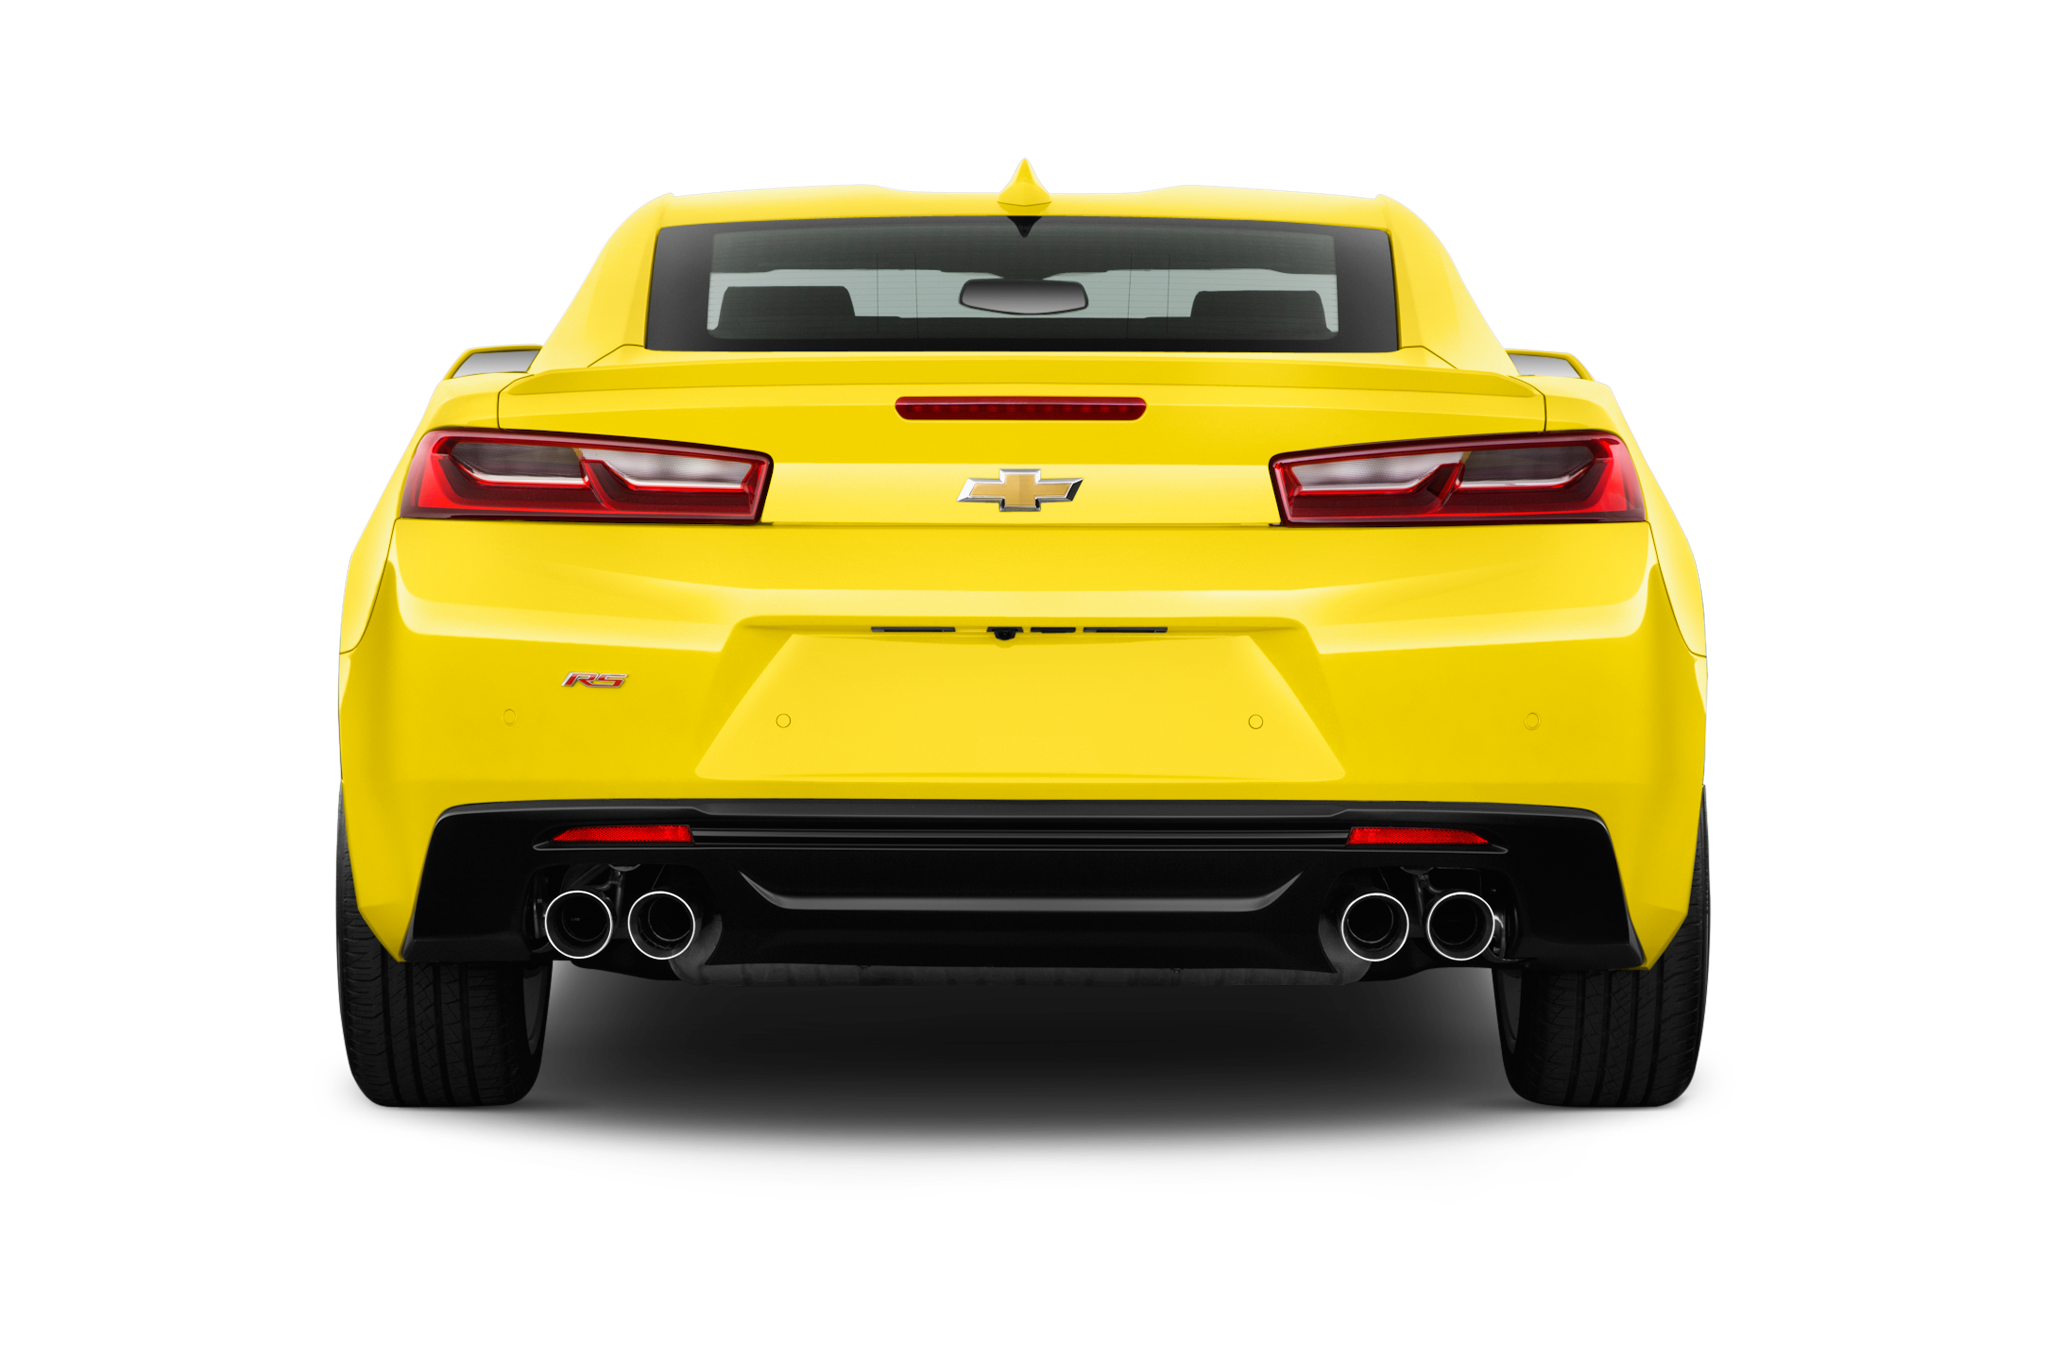 Chevy drawing car. Chevrolet camaro png image